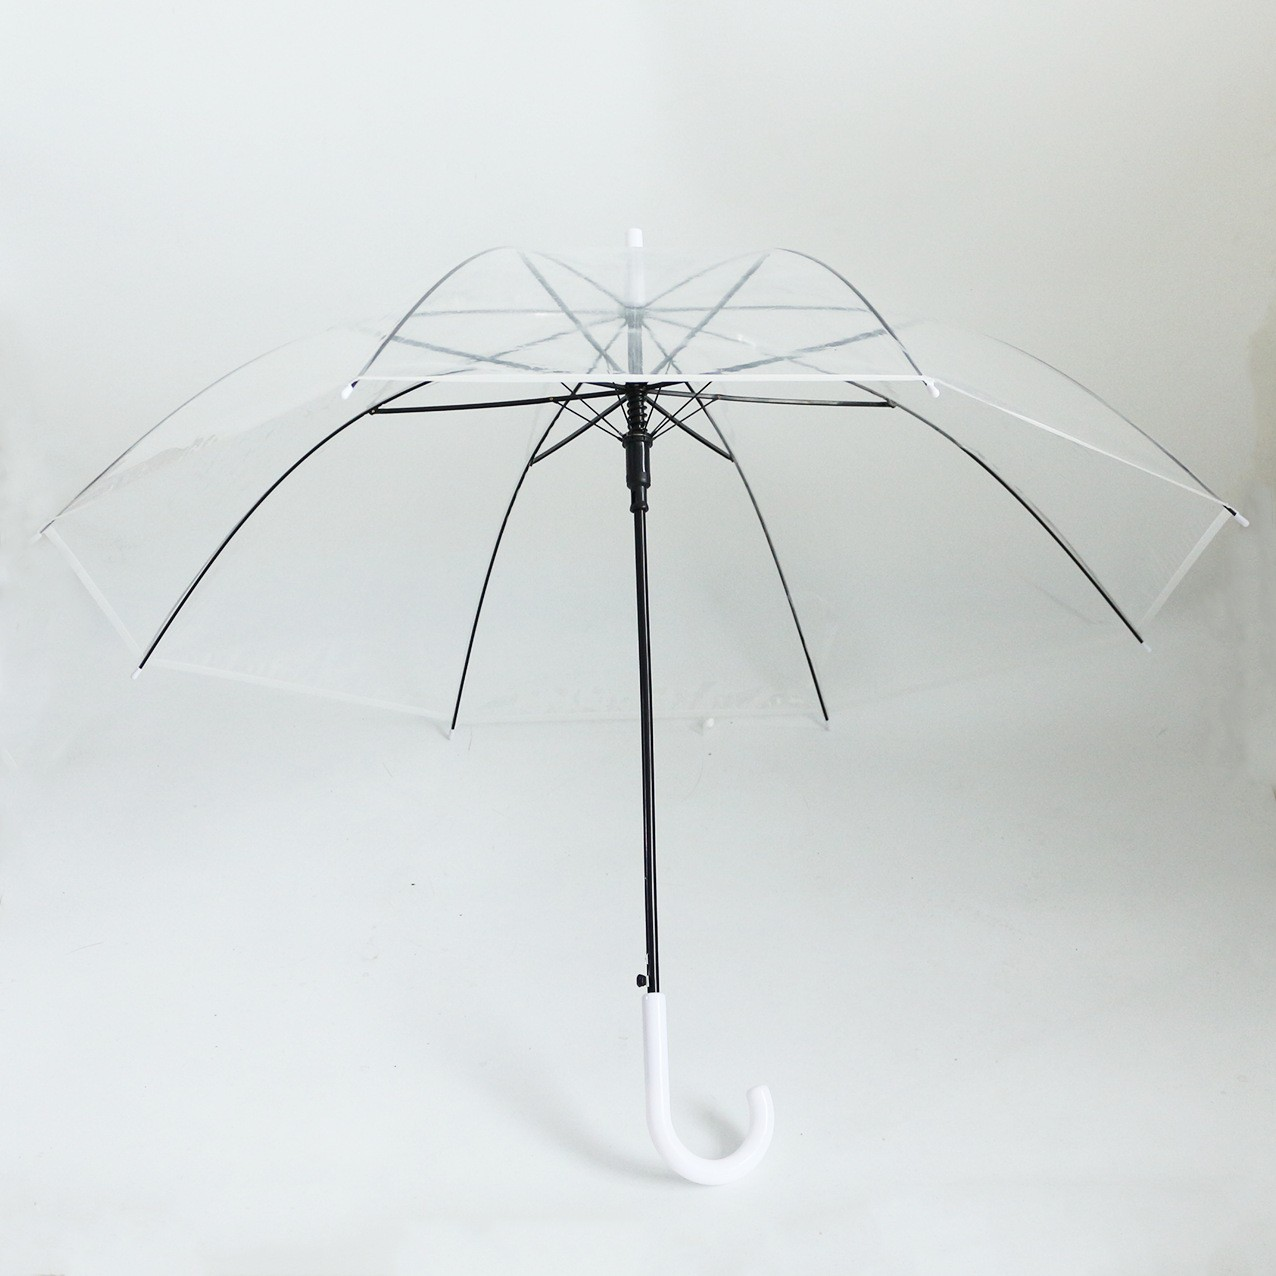 Clear Arched Apolo Rain Umbrellas Transparent Arched Apolo Umbrellas for Girls and Ladies with Long Handle